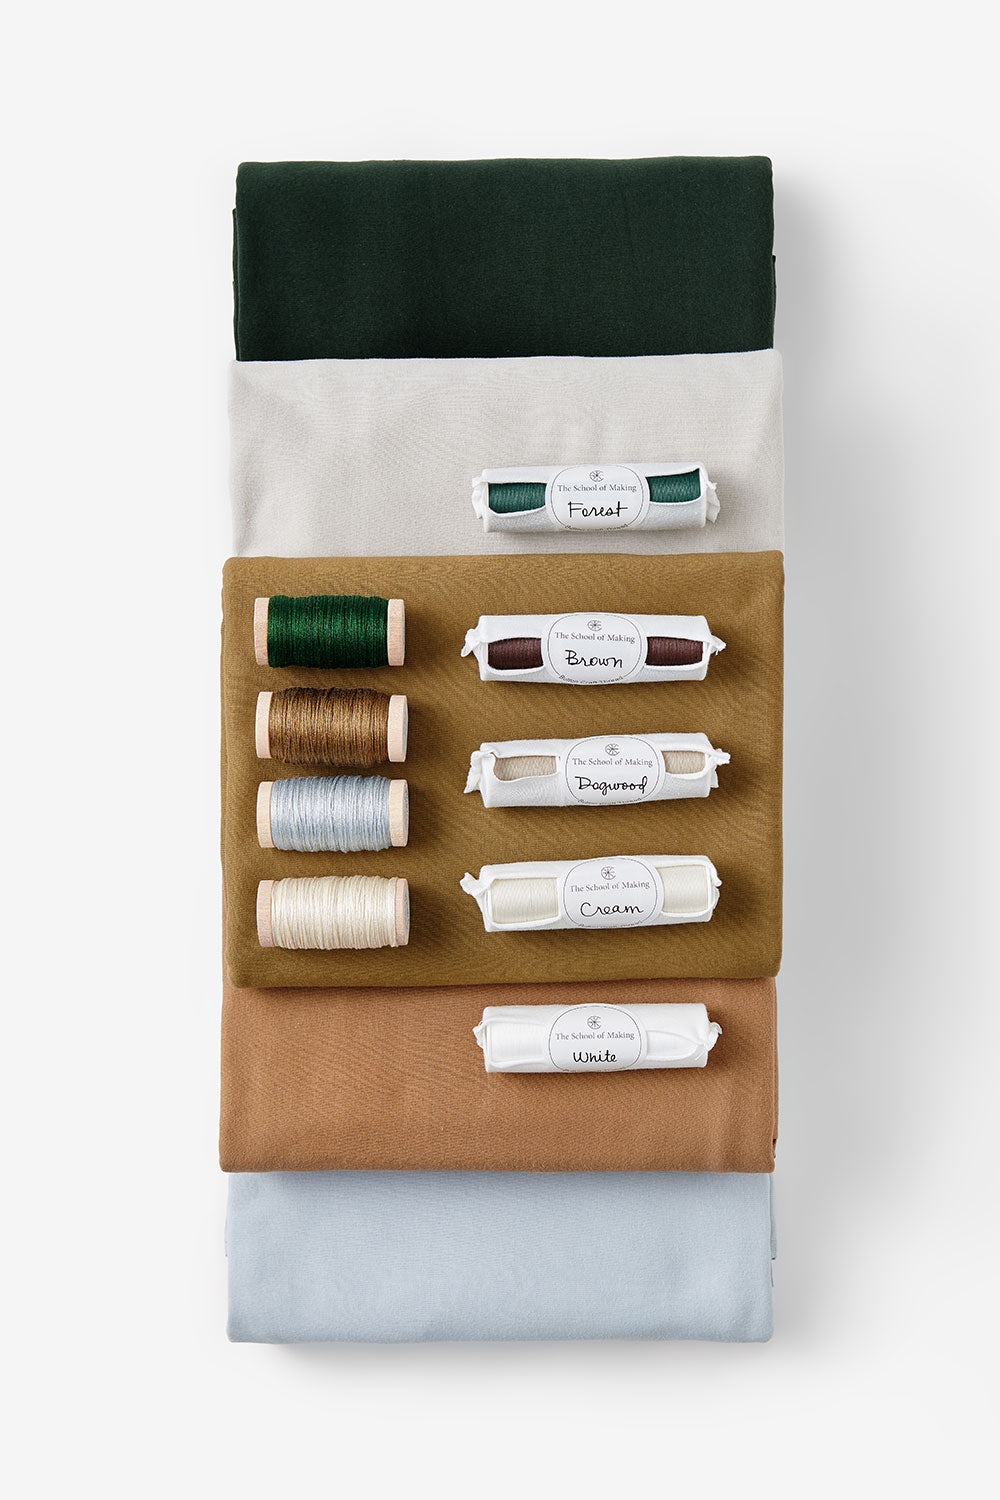 The School of Making Color Palette Bundle Design Stack for DIY Sewing Projects